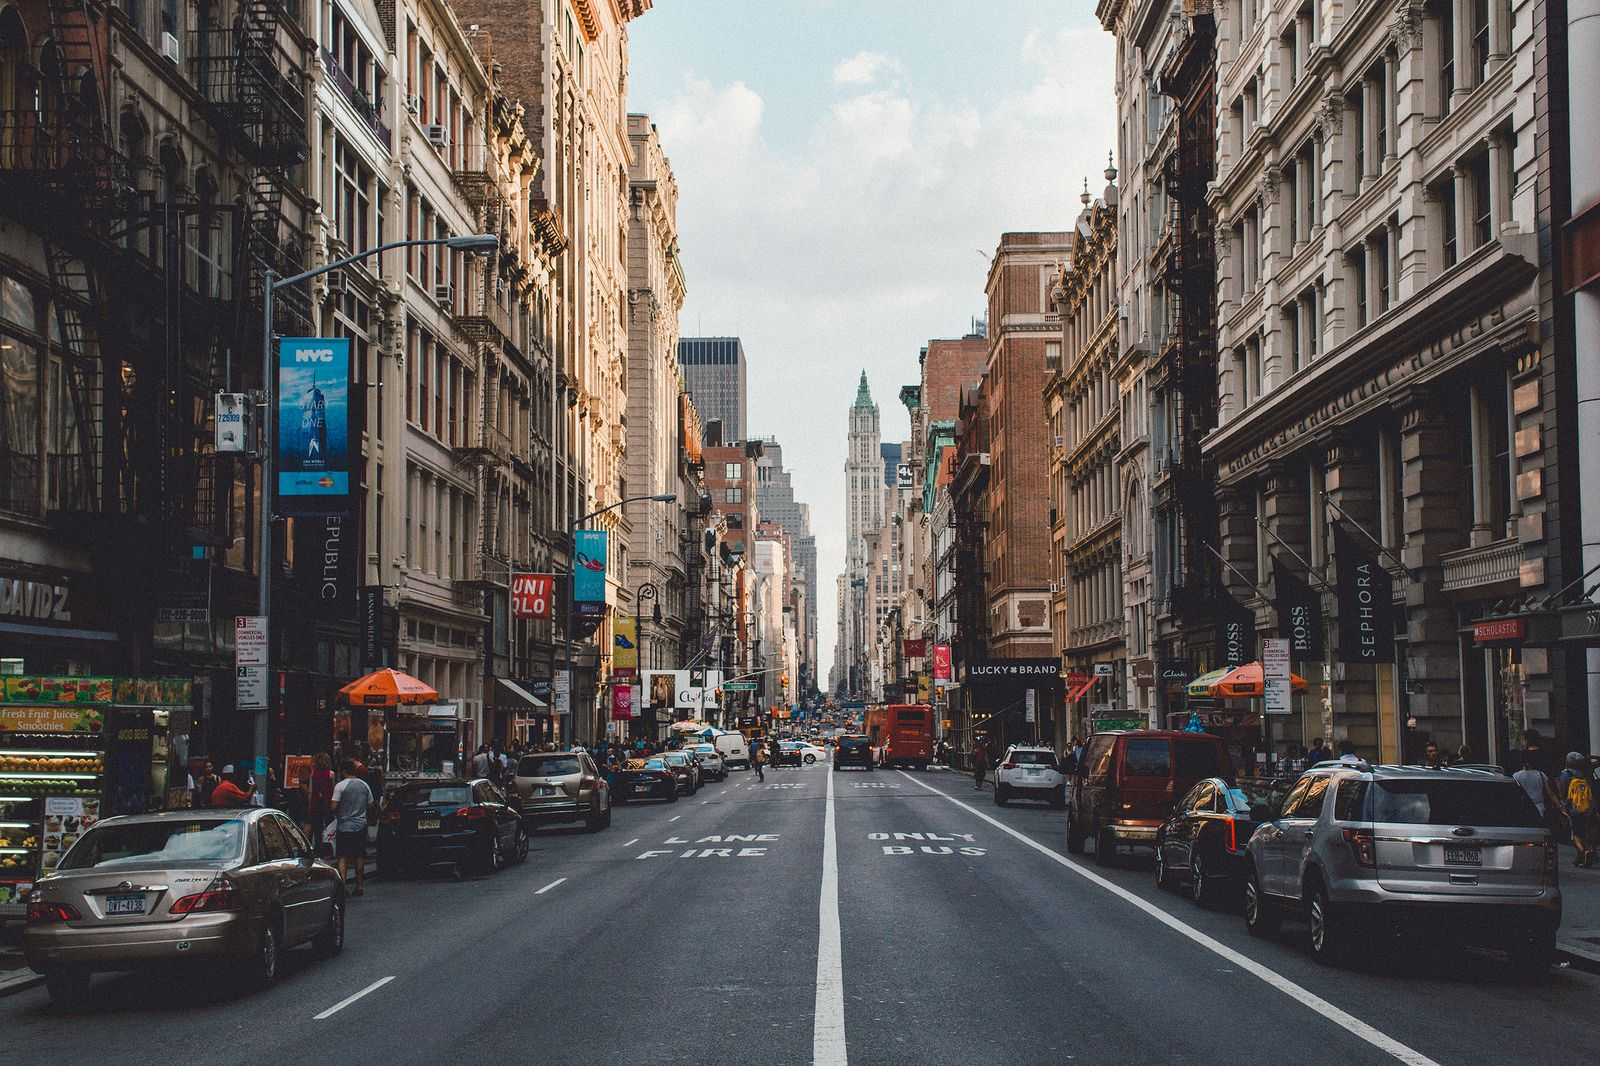 Looking Down The Middle Of A Street In New York By Samalive City Landscape City Pictures City